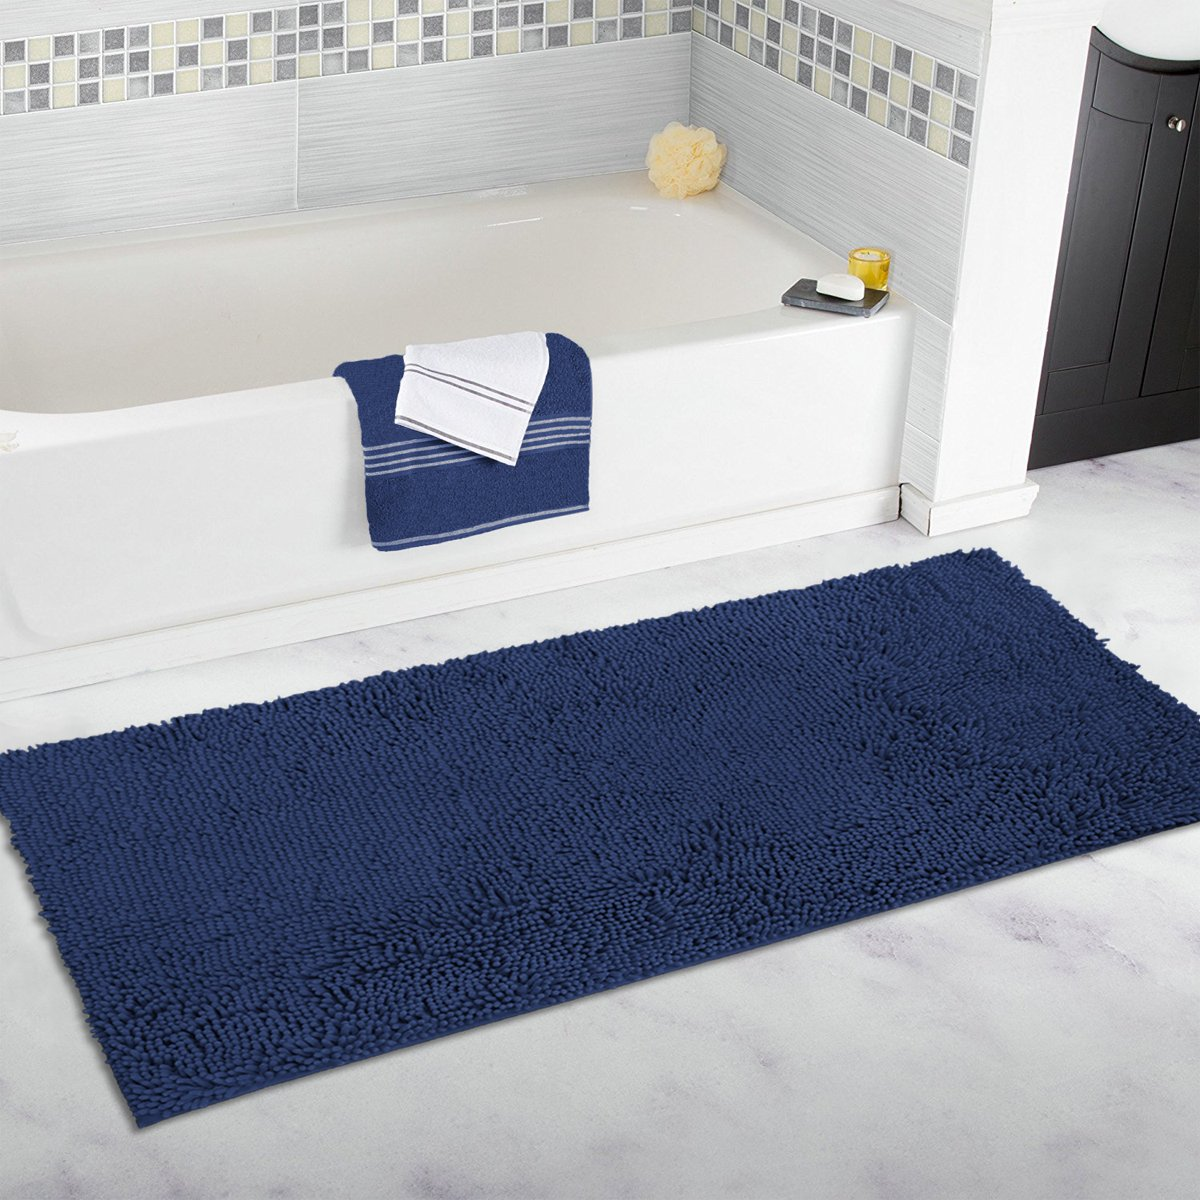 7 Best Water Absorbent Bath Mats Of 2019 Peachy Rooms